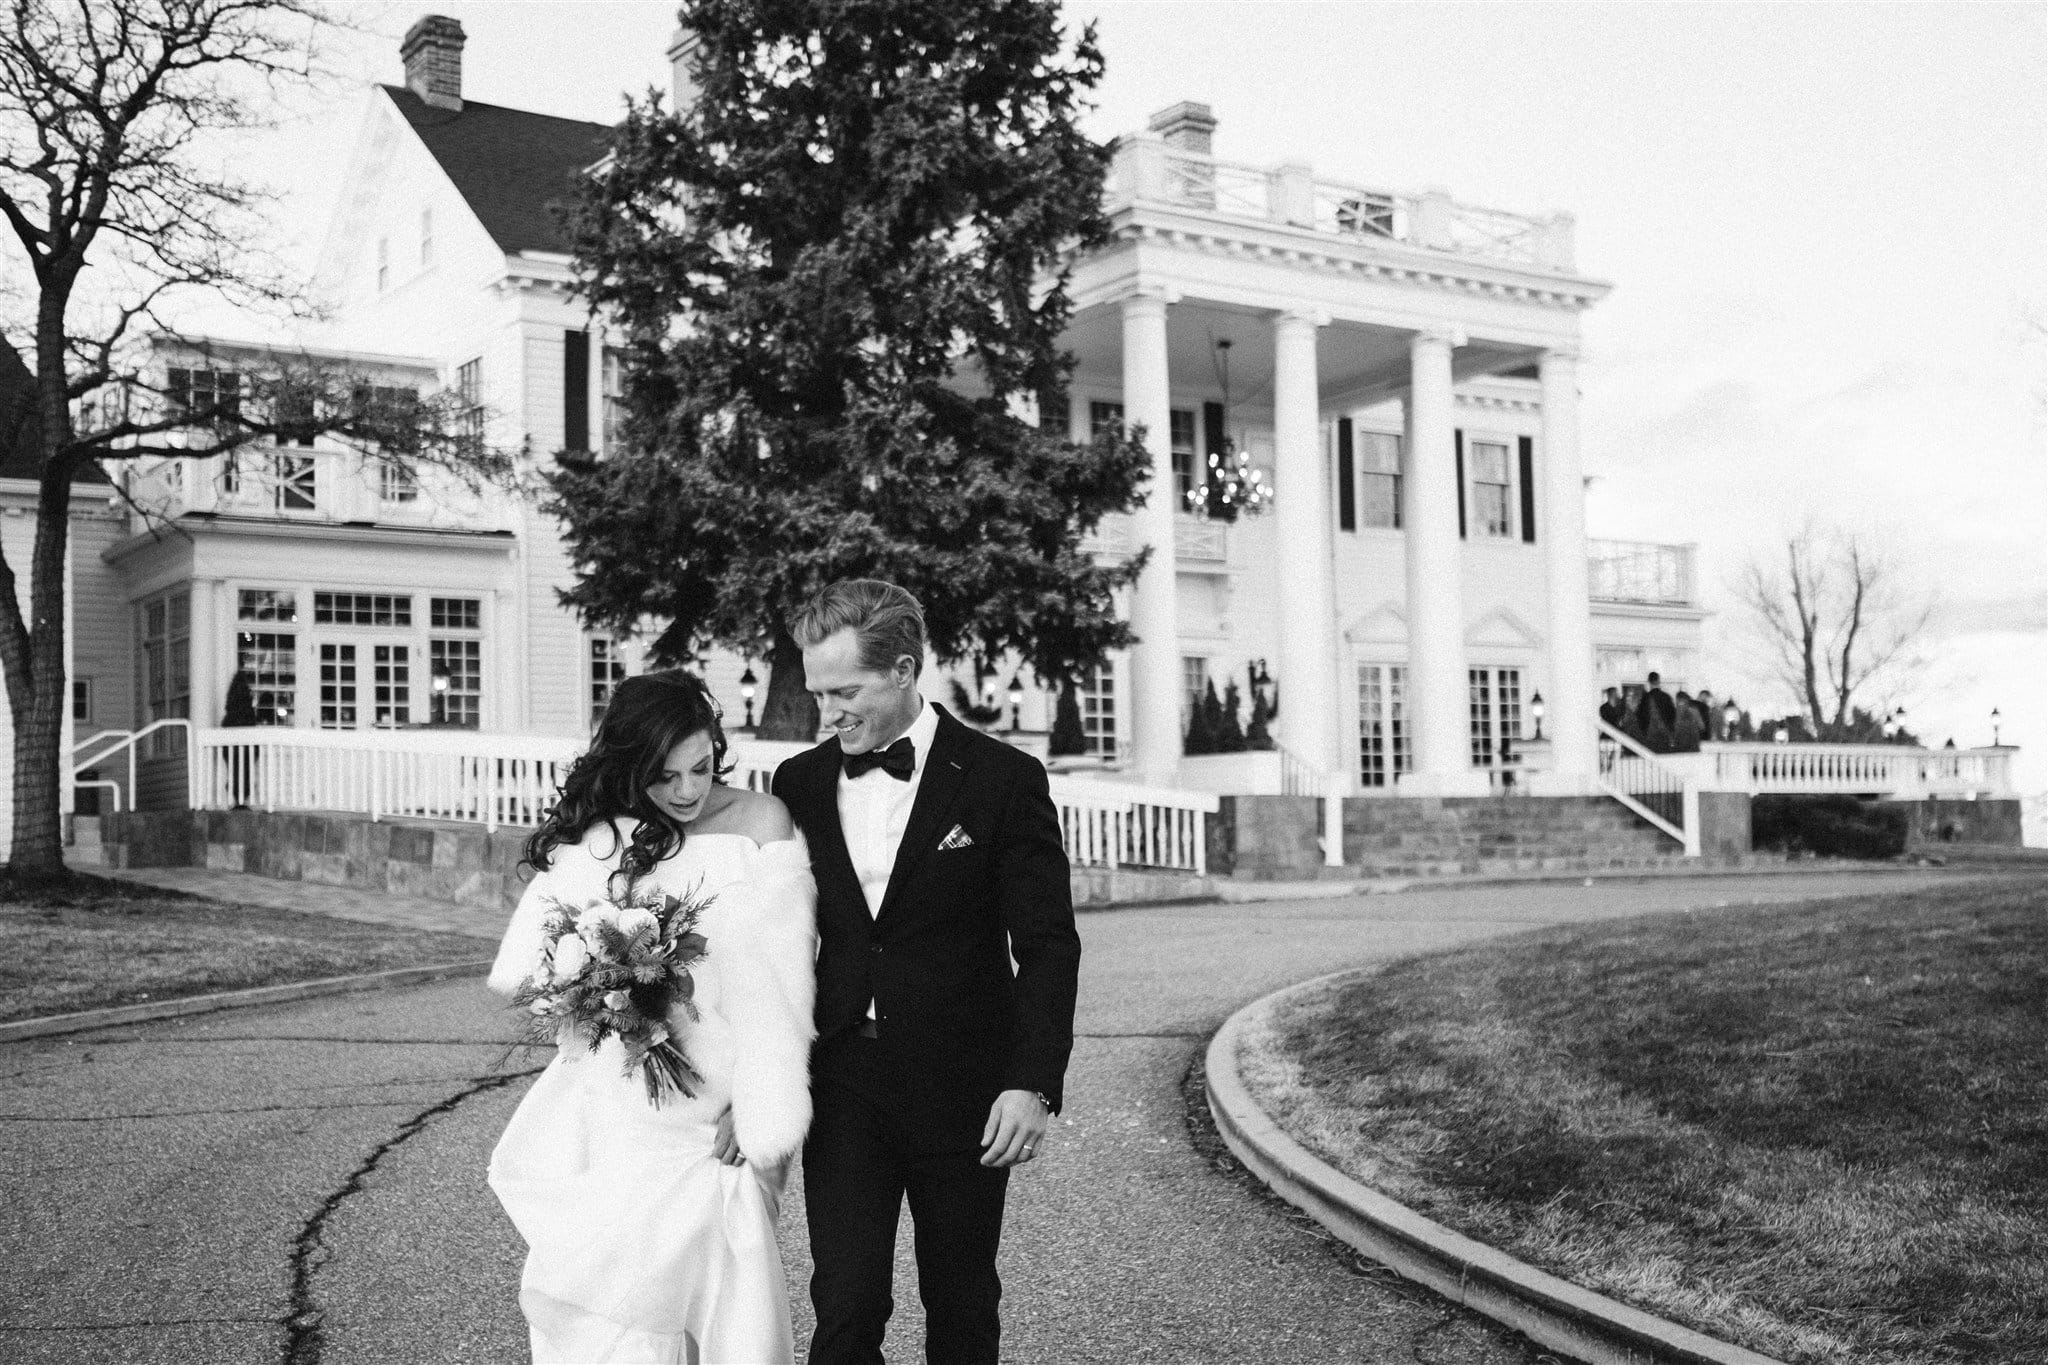 Bride and groom walking in front of the Manor House for wedding portraits